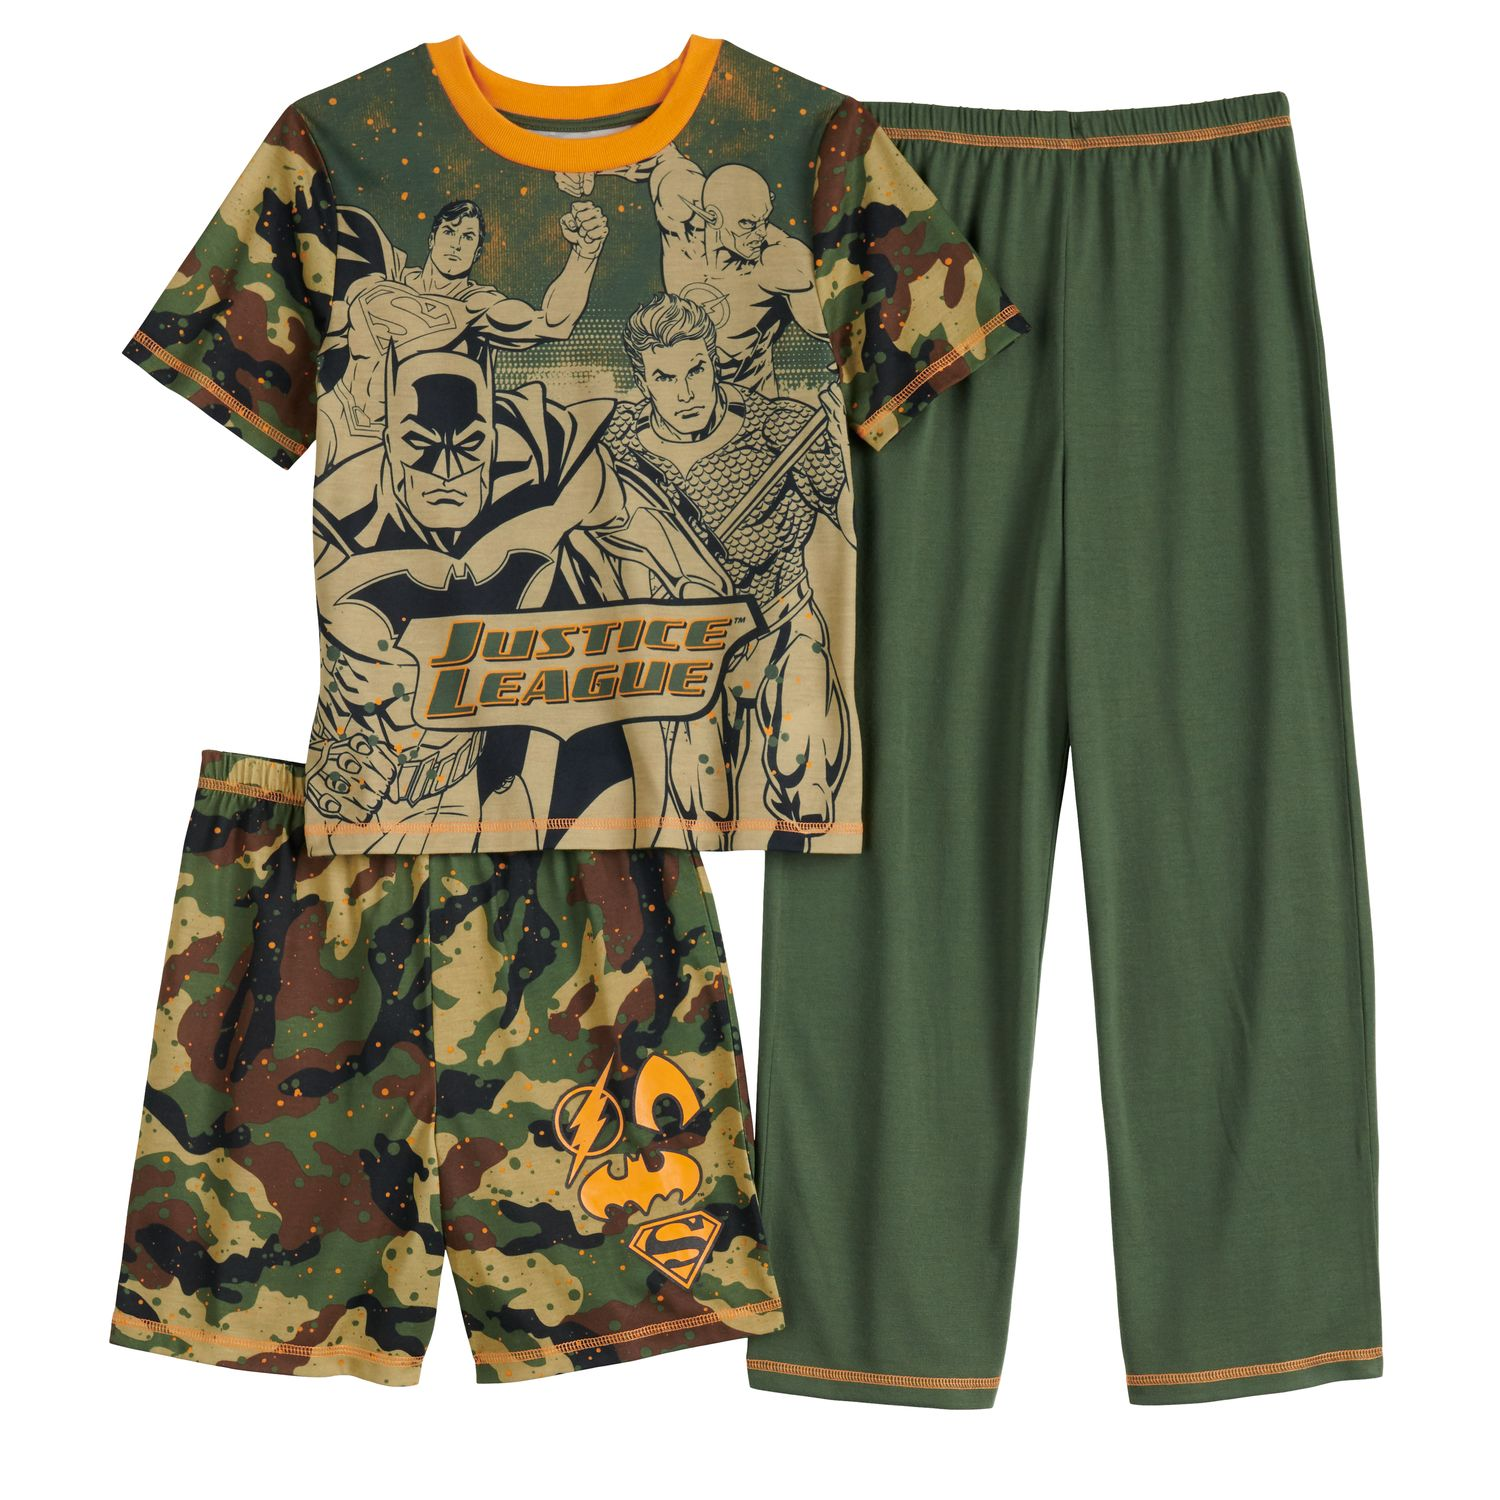 Short-Sleeve Top and Shorts Jellifish Kids Boys 2-Piece Cotton Pajamas Set